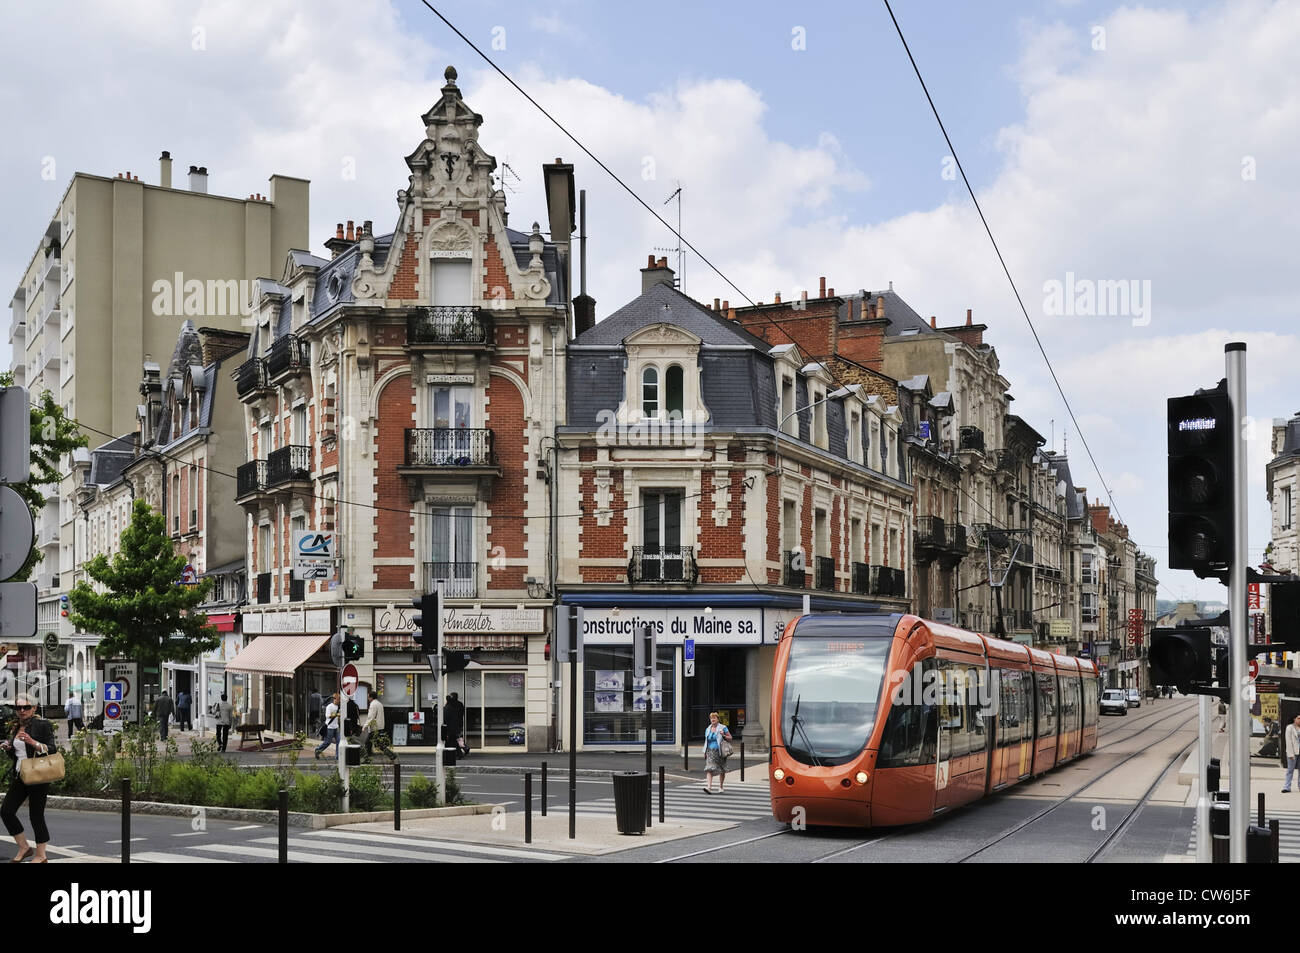 modern tram in the old town of Le Mans, France, Le Mans Stock Photo